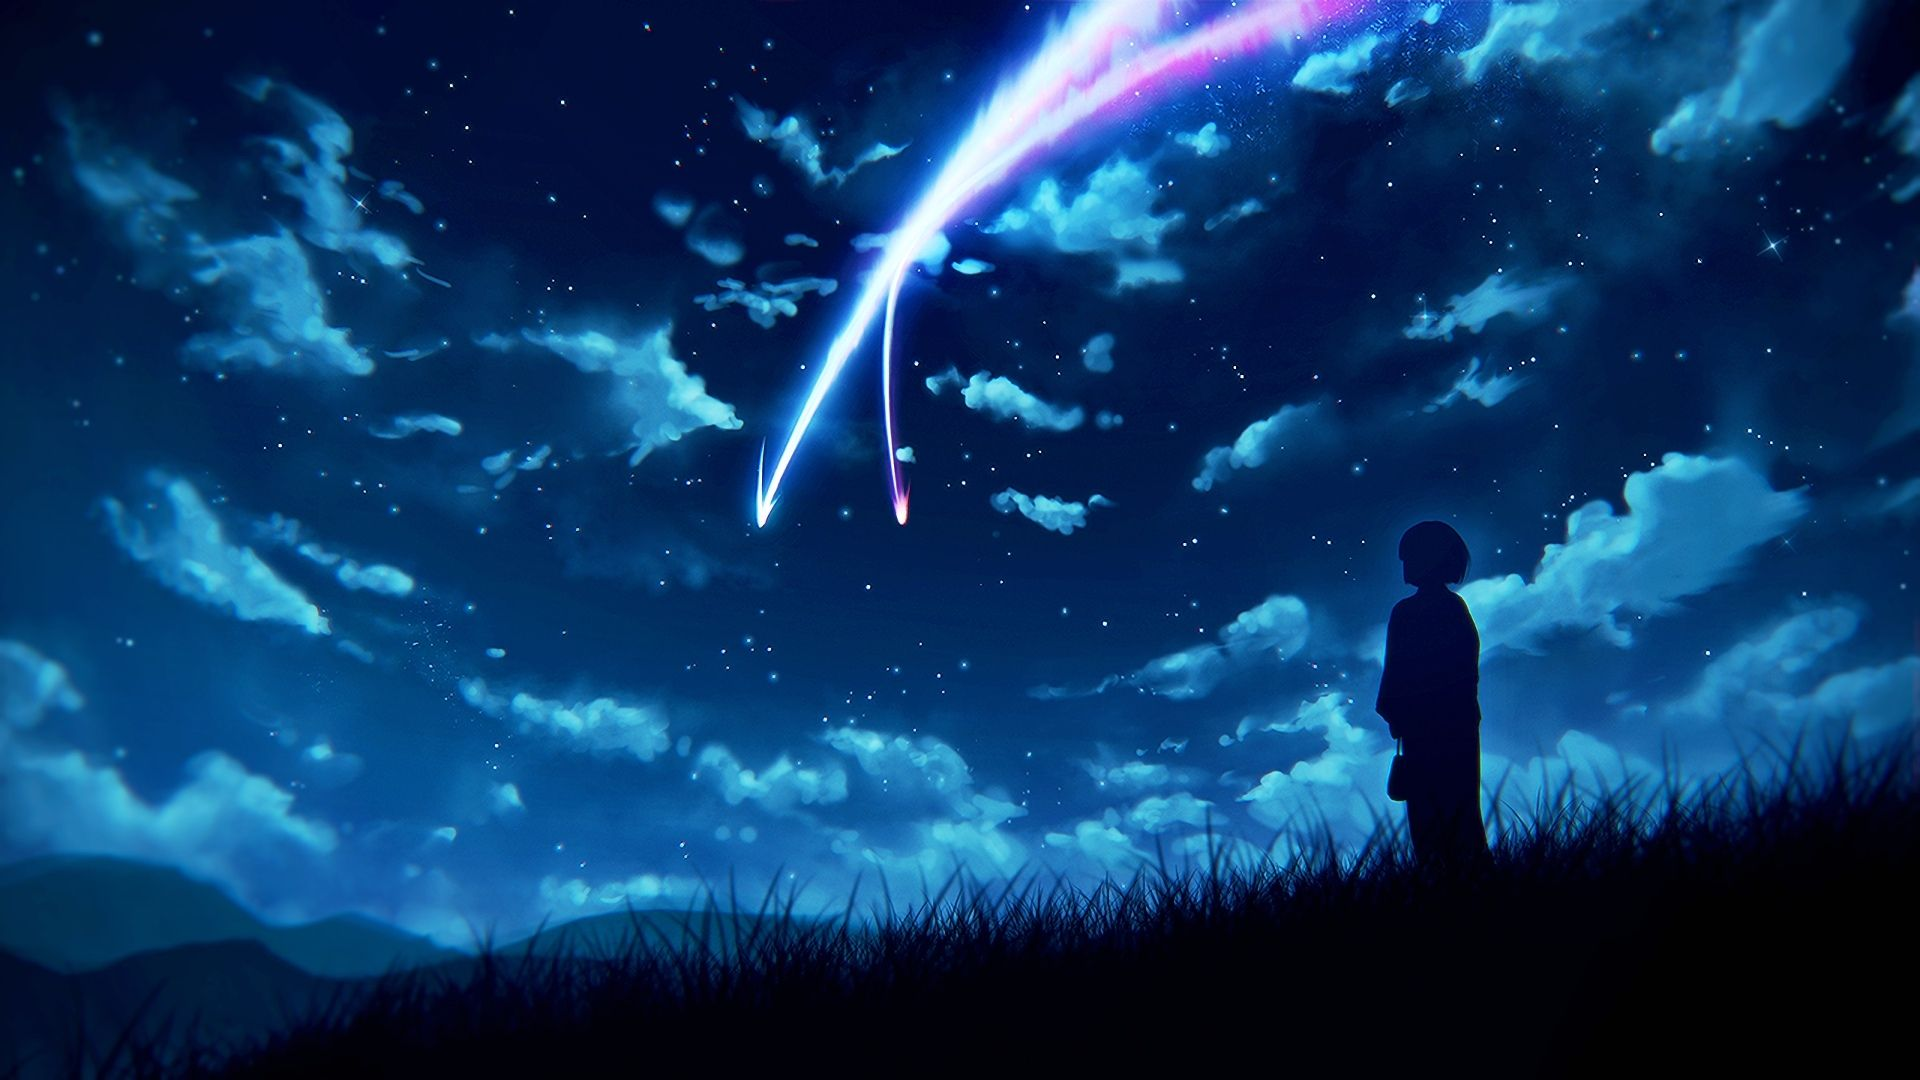 Anime Your Name Mitsuha Miyamizu Kimi No Na Wa Wallpaper Anime Scenery Wallpaper Anime Scenery Scenery Wallpaper